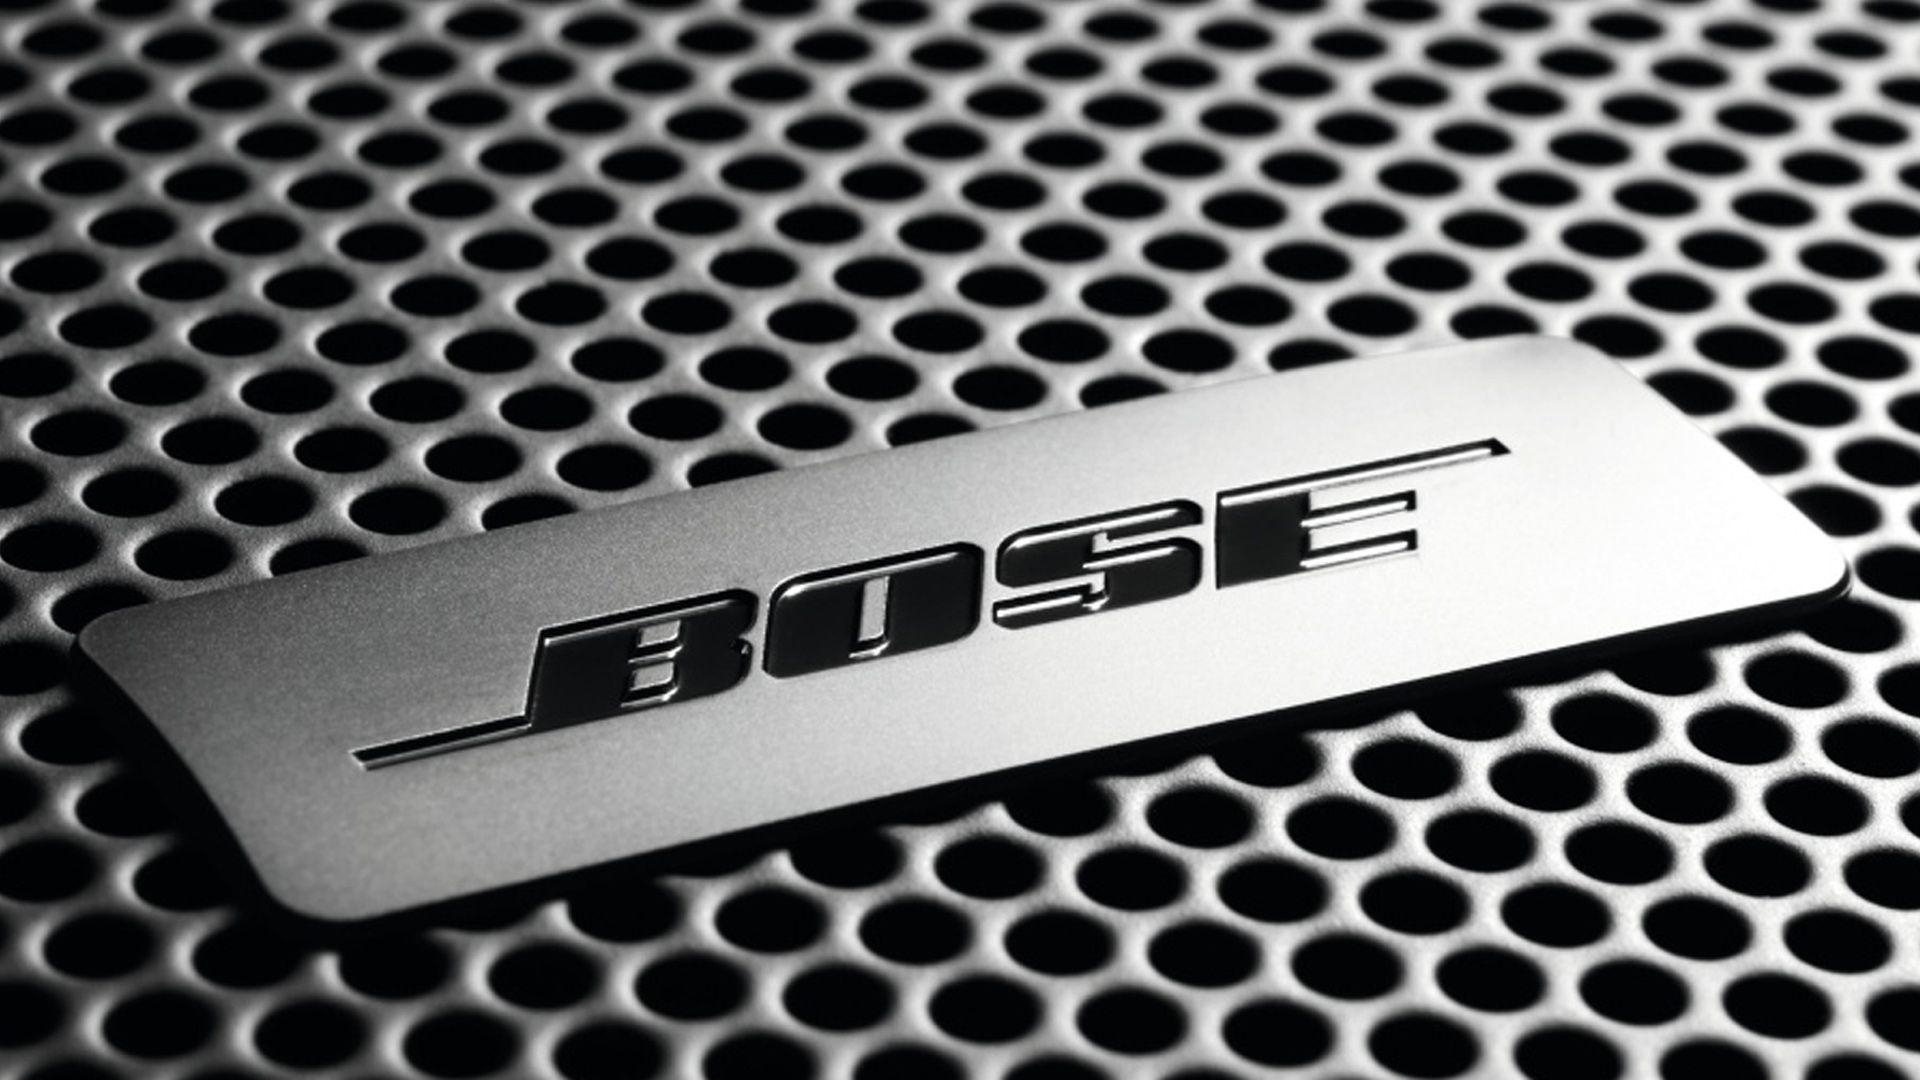 1920x1080 Bose Wallpapers